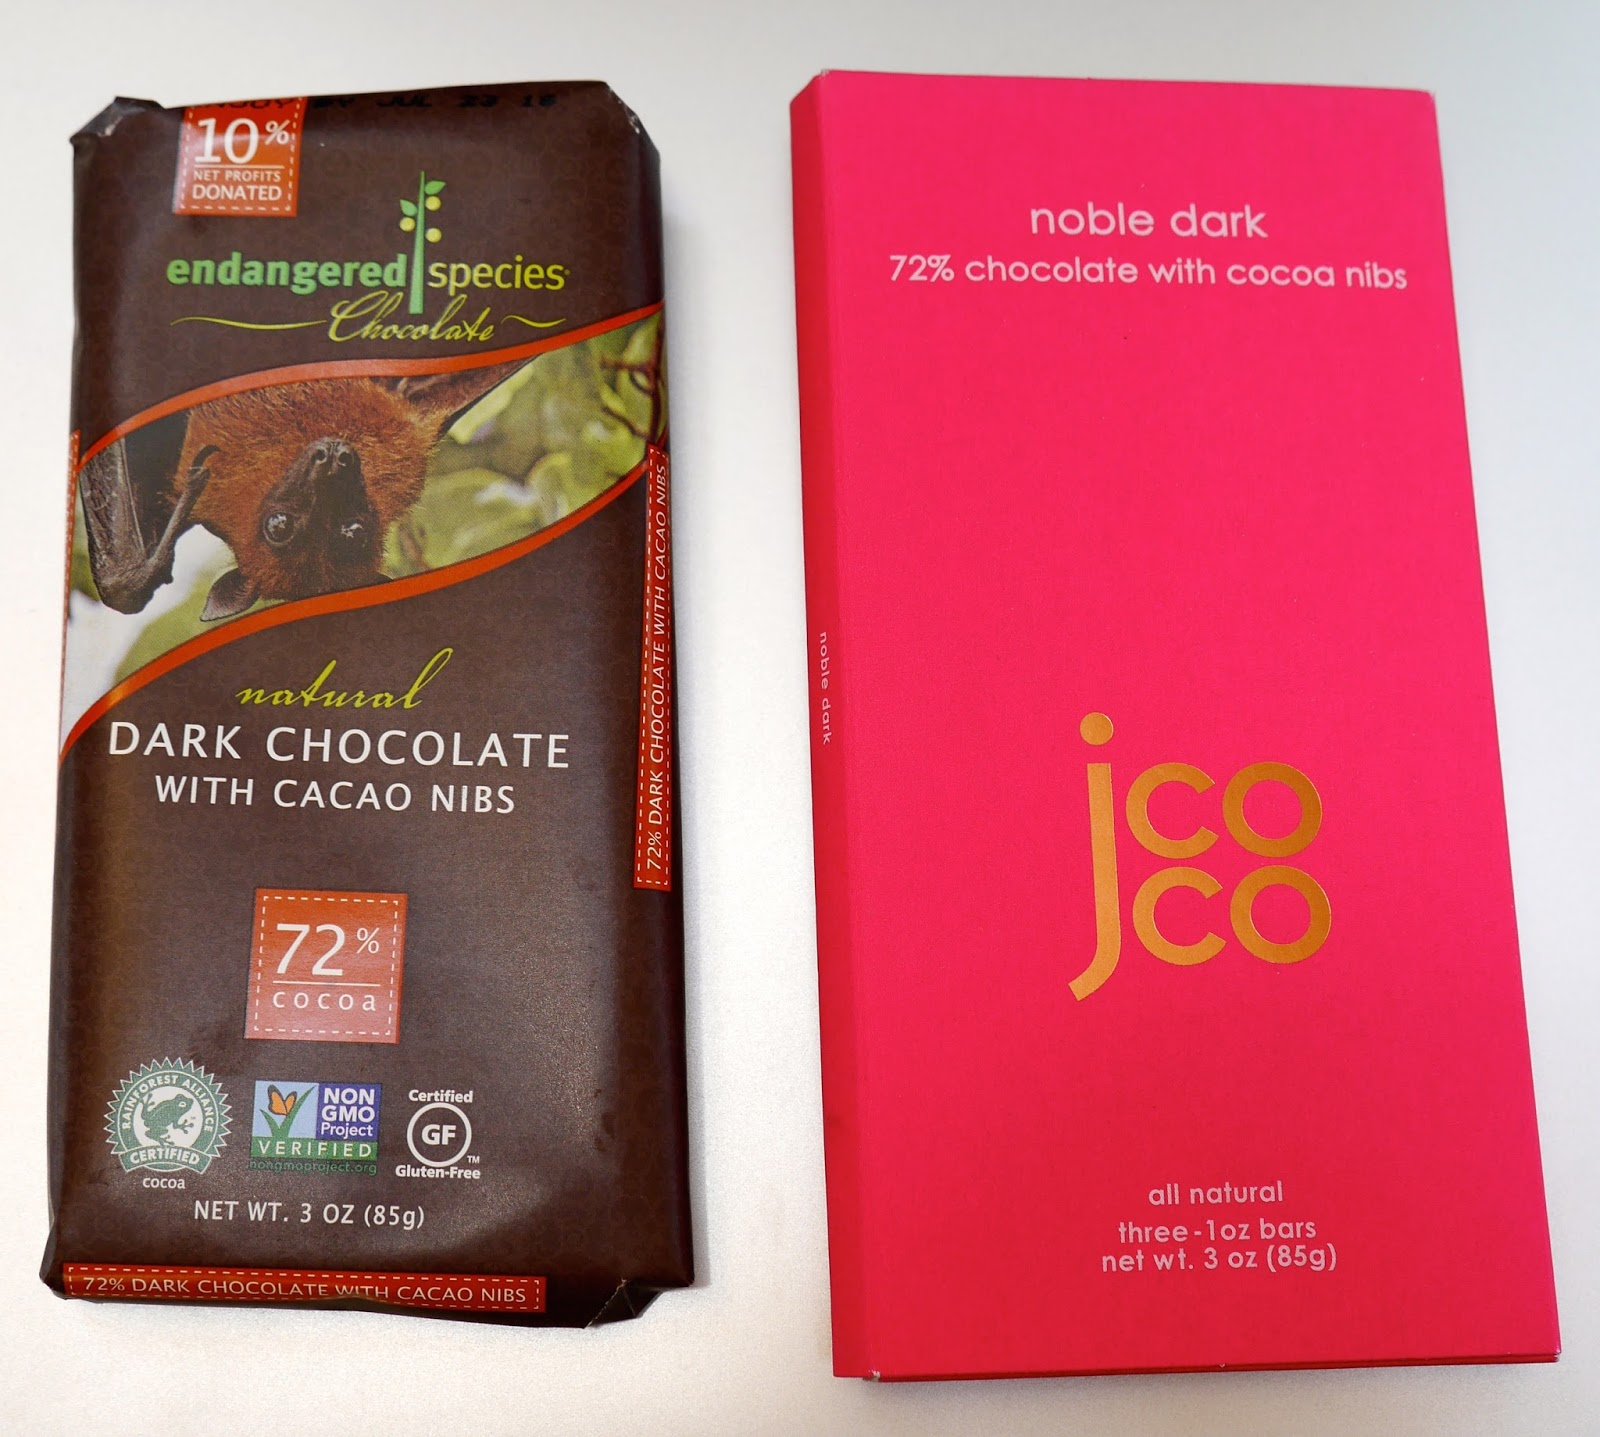 Foods For Long Life: Compare These Vegan Dark Chocolate Bars ...